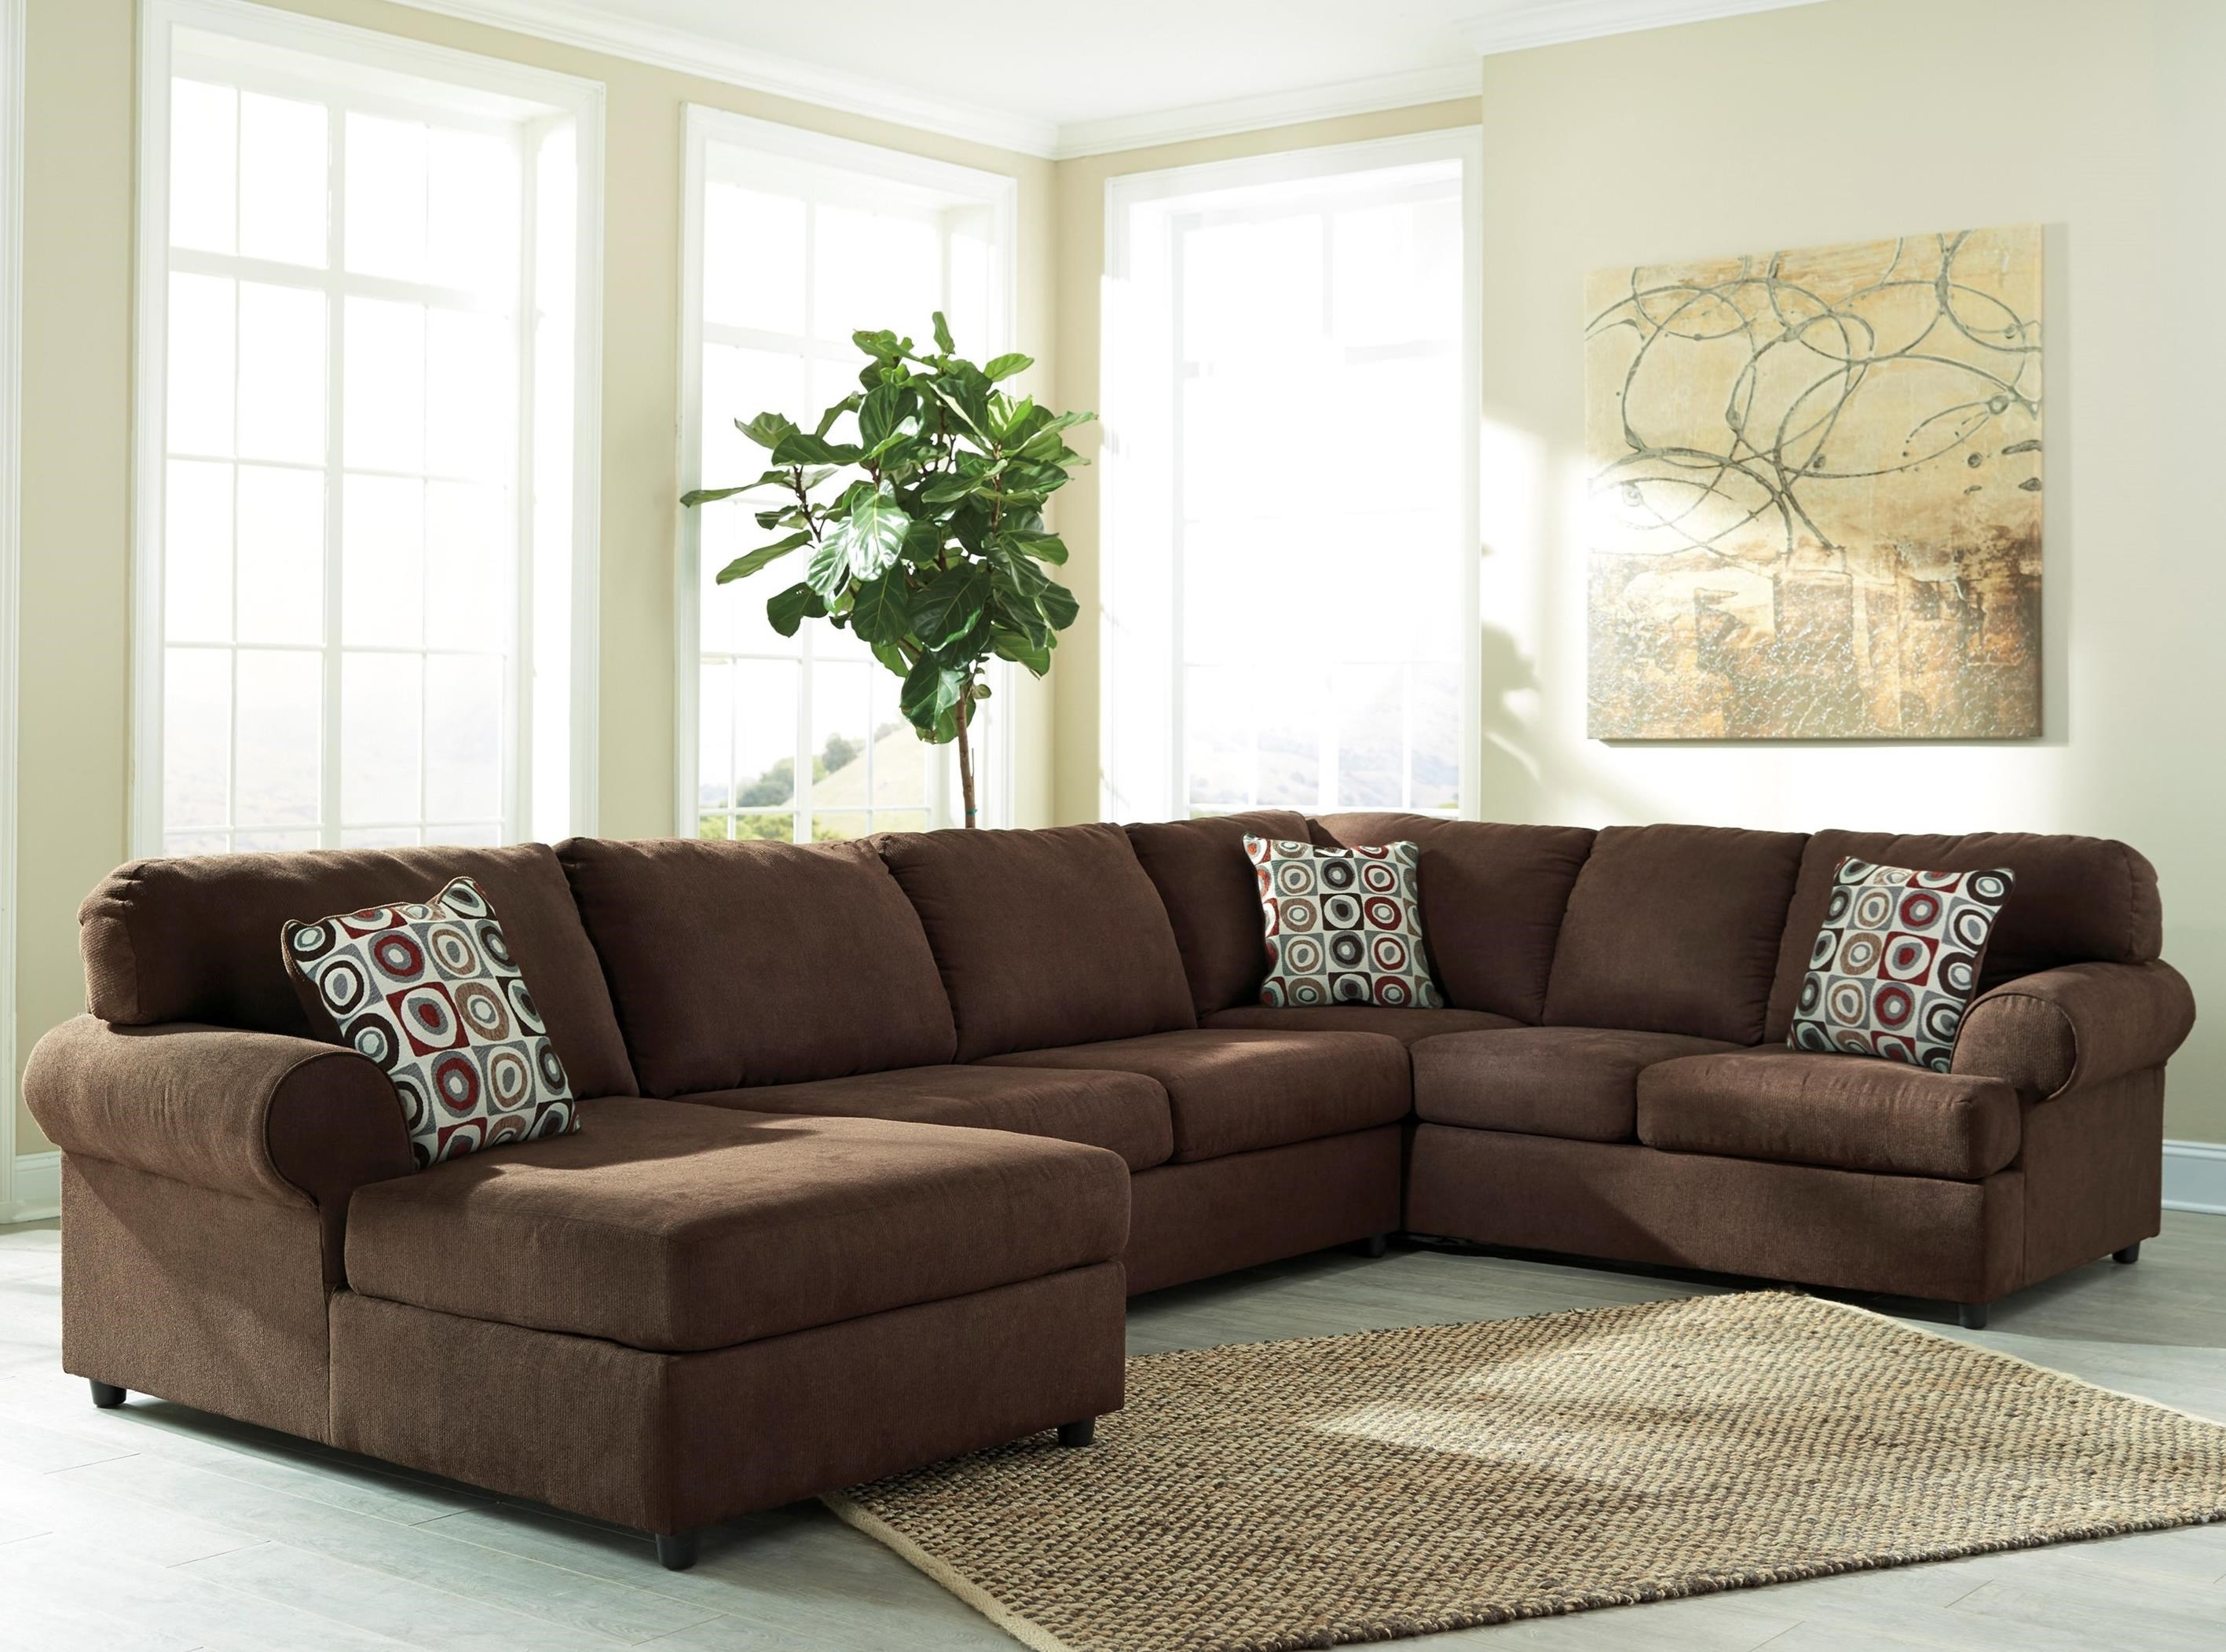 Gray Leather Sectional | Cheap Sectional Couches | Sofa Bed Sectional